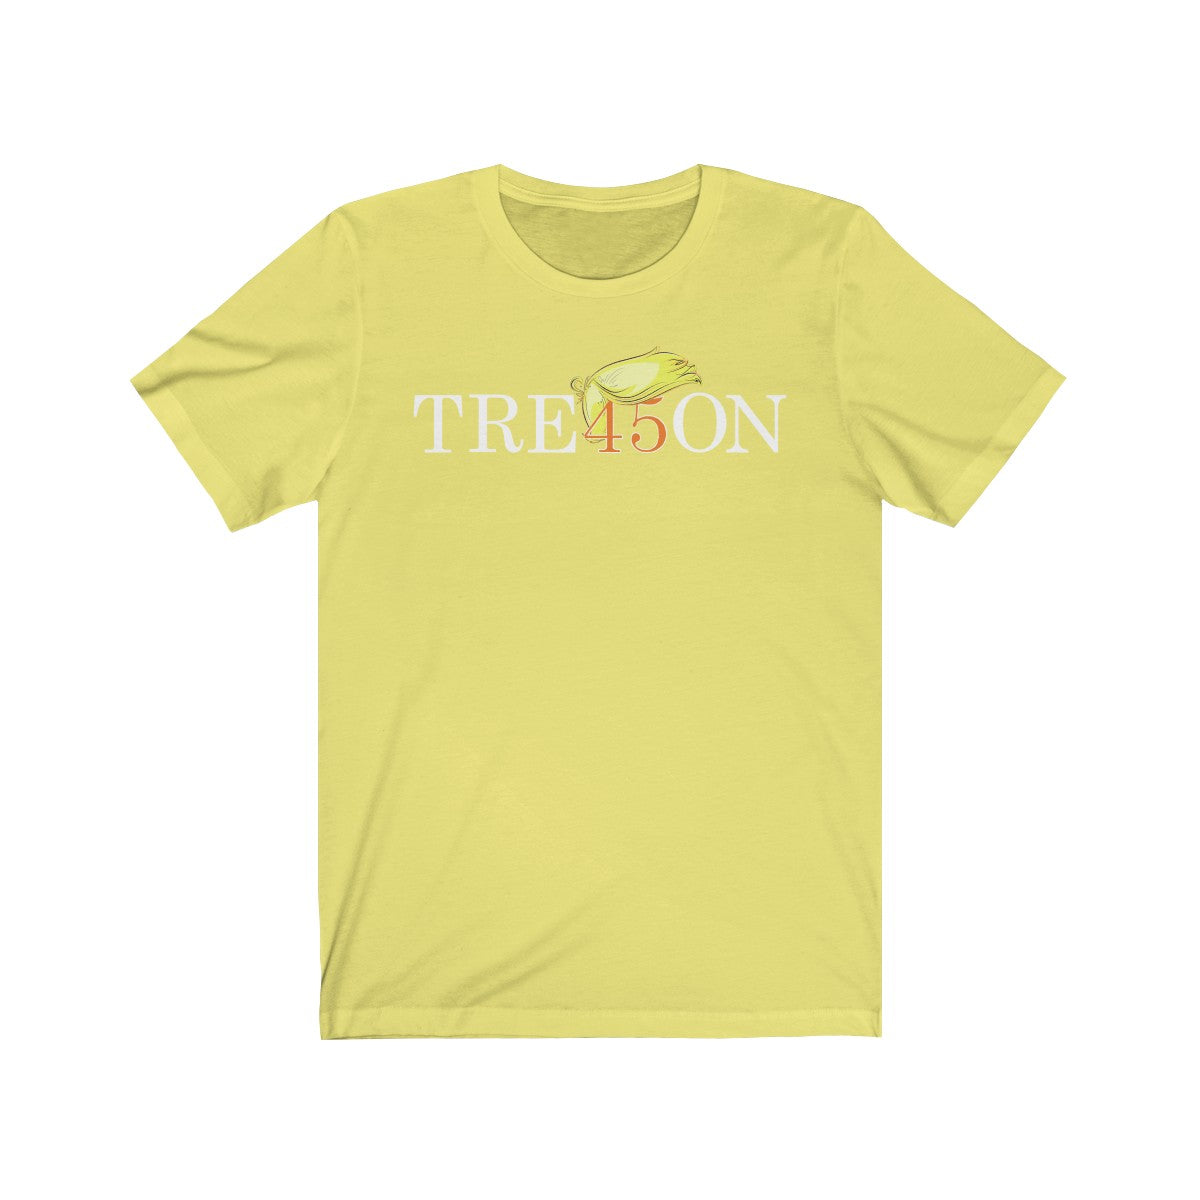 TRE45ON Unisex Jersey Short Sleeve Tee: Light